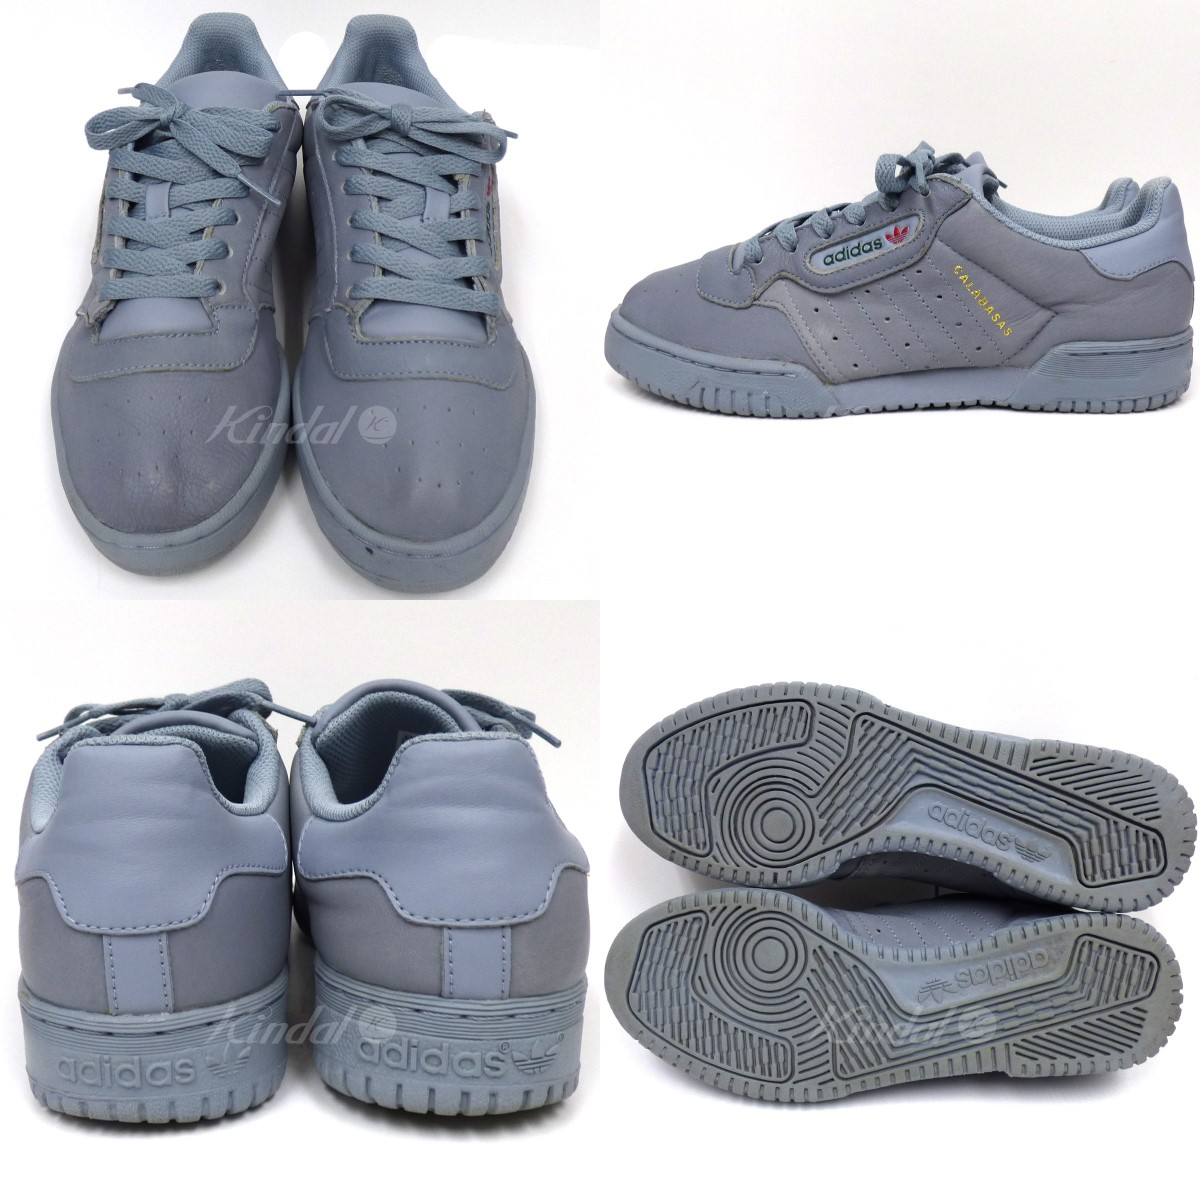 496dab6c ... adidas Originals by KANYE WEST YEEZY Powerphase easy power phase  sneakers gray blue size: US7 ...